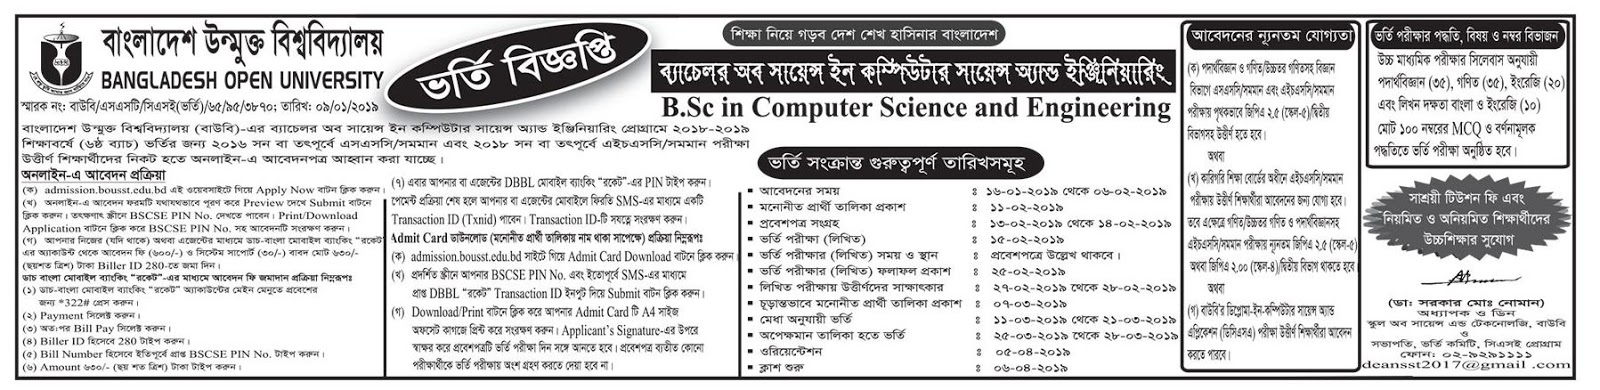 Bangladesh Open University (BOU) B.Sc in Computer Science Admission 2018-2019 Circular